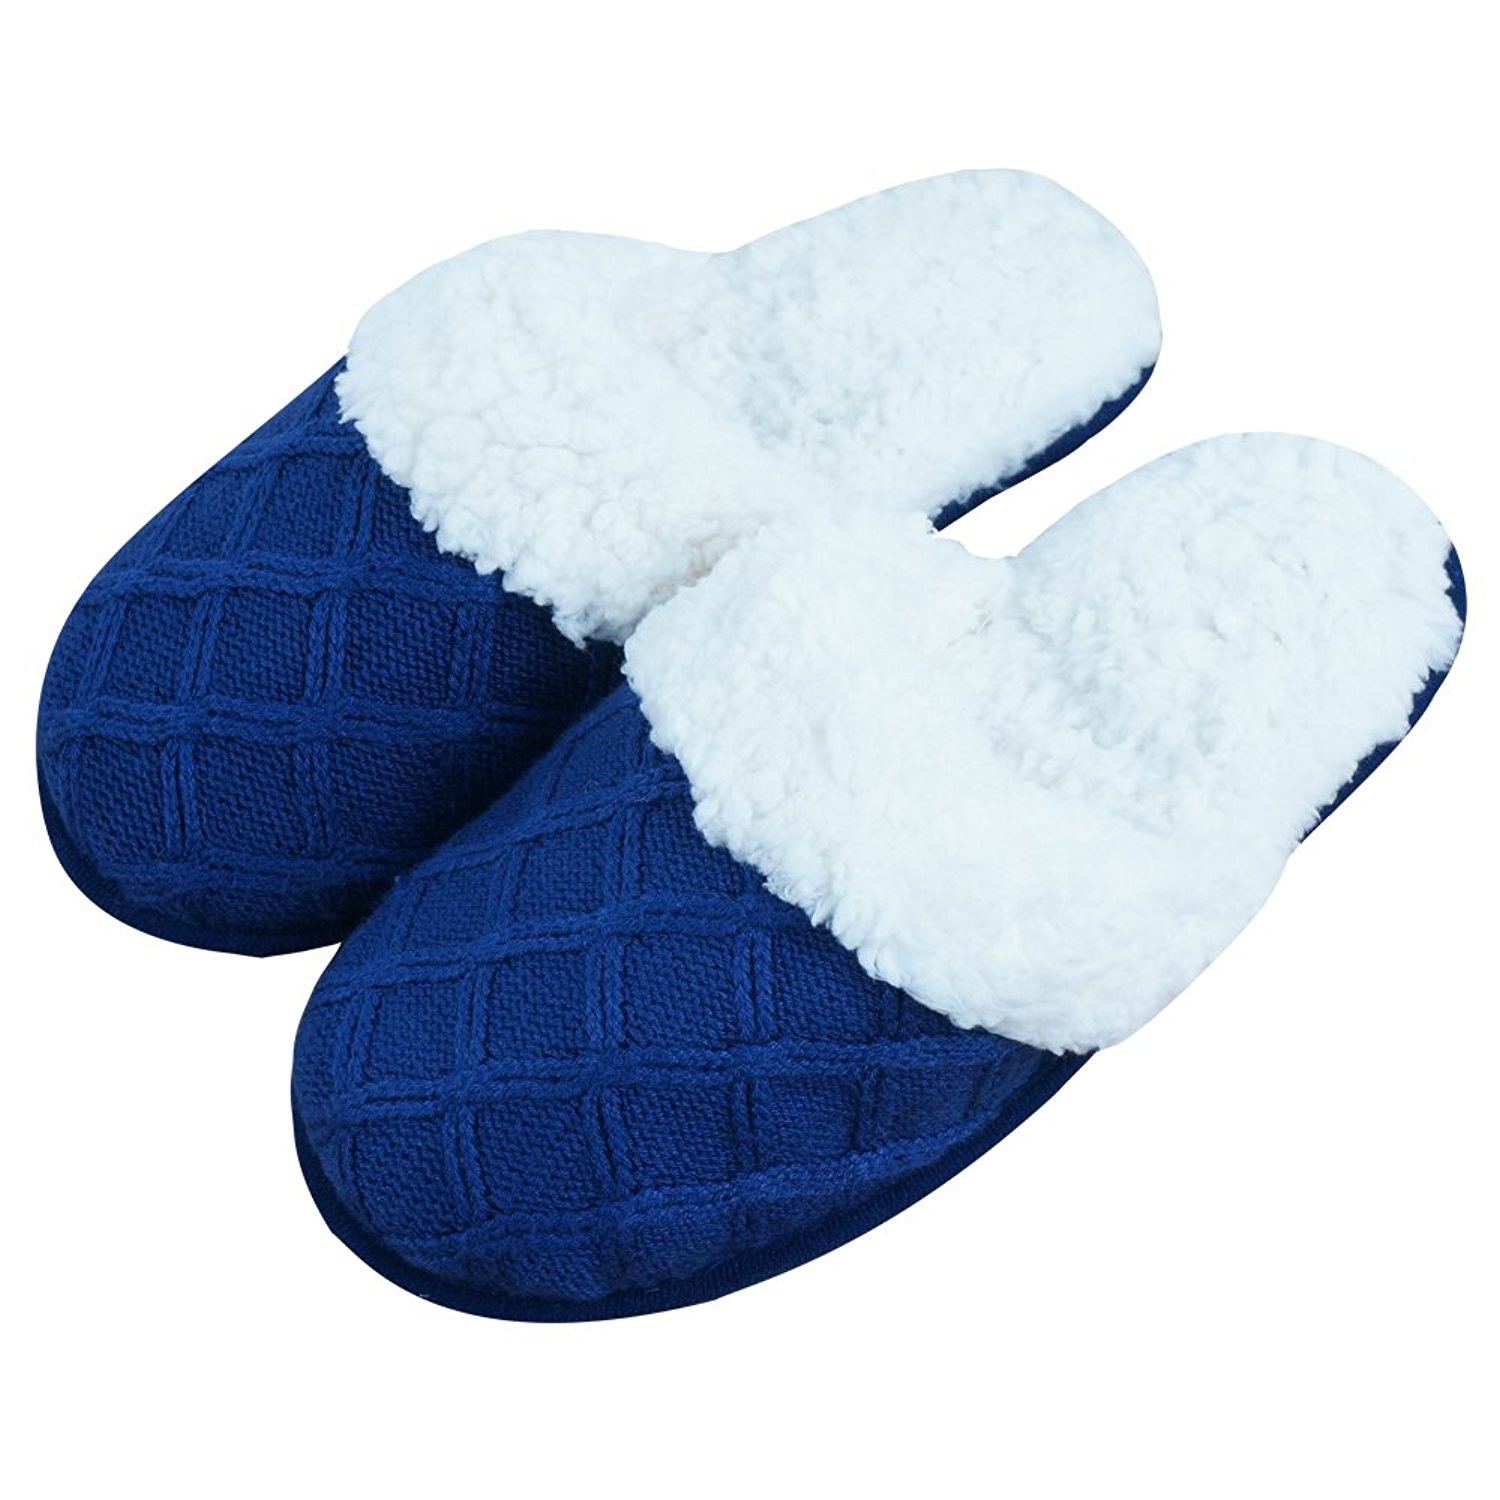 iisutas Women's Slippers With Comfort Memory Foam, House Shoes For Women, Wool-Like Plush Fleece Lined Slippers, Indoor, Outdoor Anti-Skid Sole